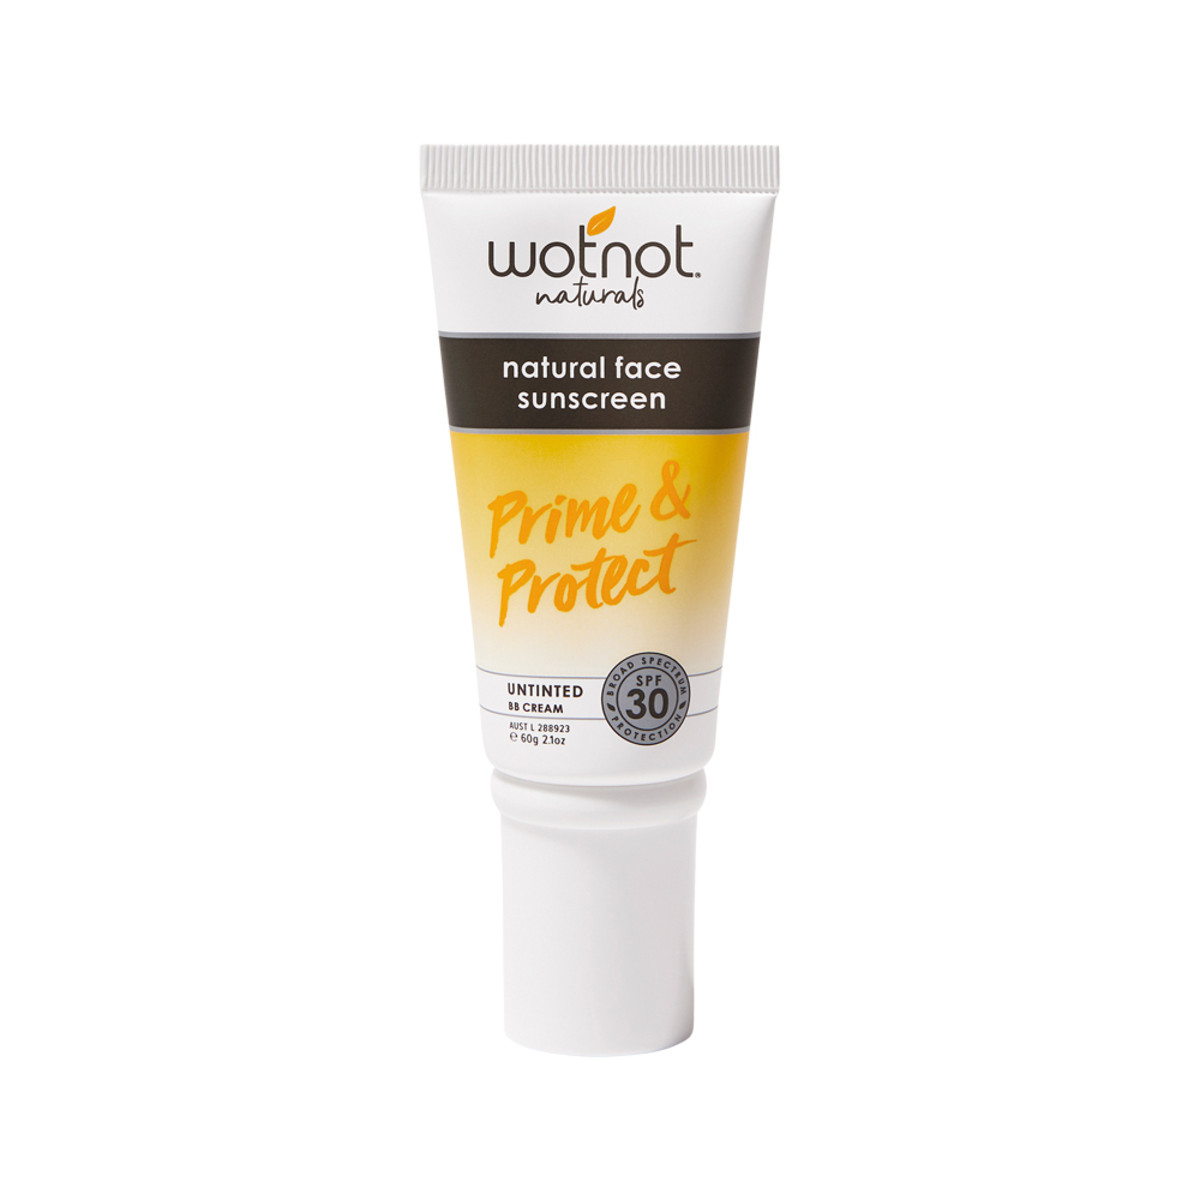 Wotnot Natural Sunscreen Face SPF 30 (Prime and Protect) Untinted BB Cream 60g_media-01